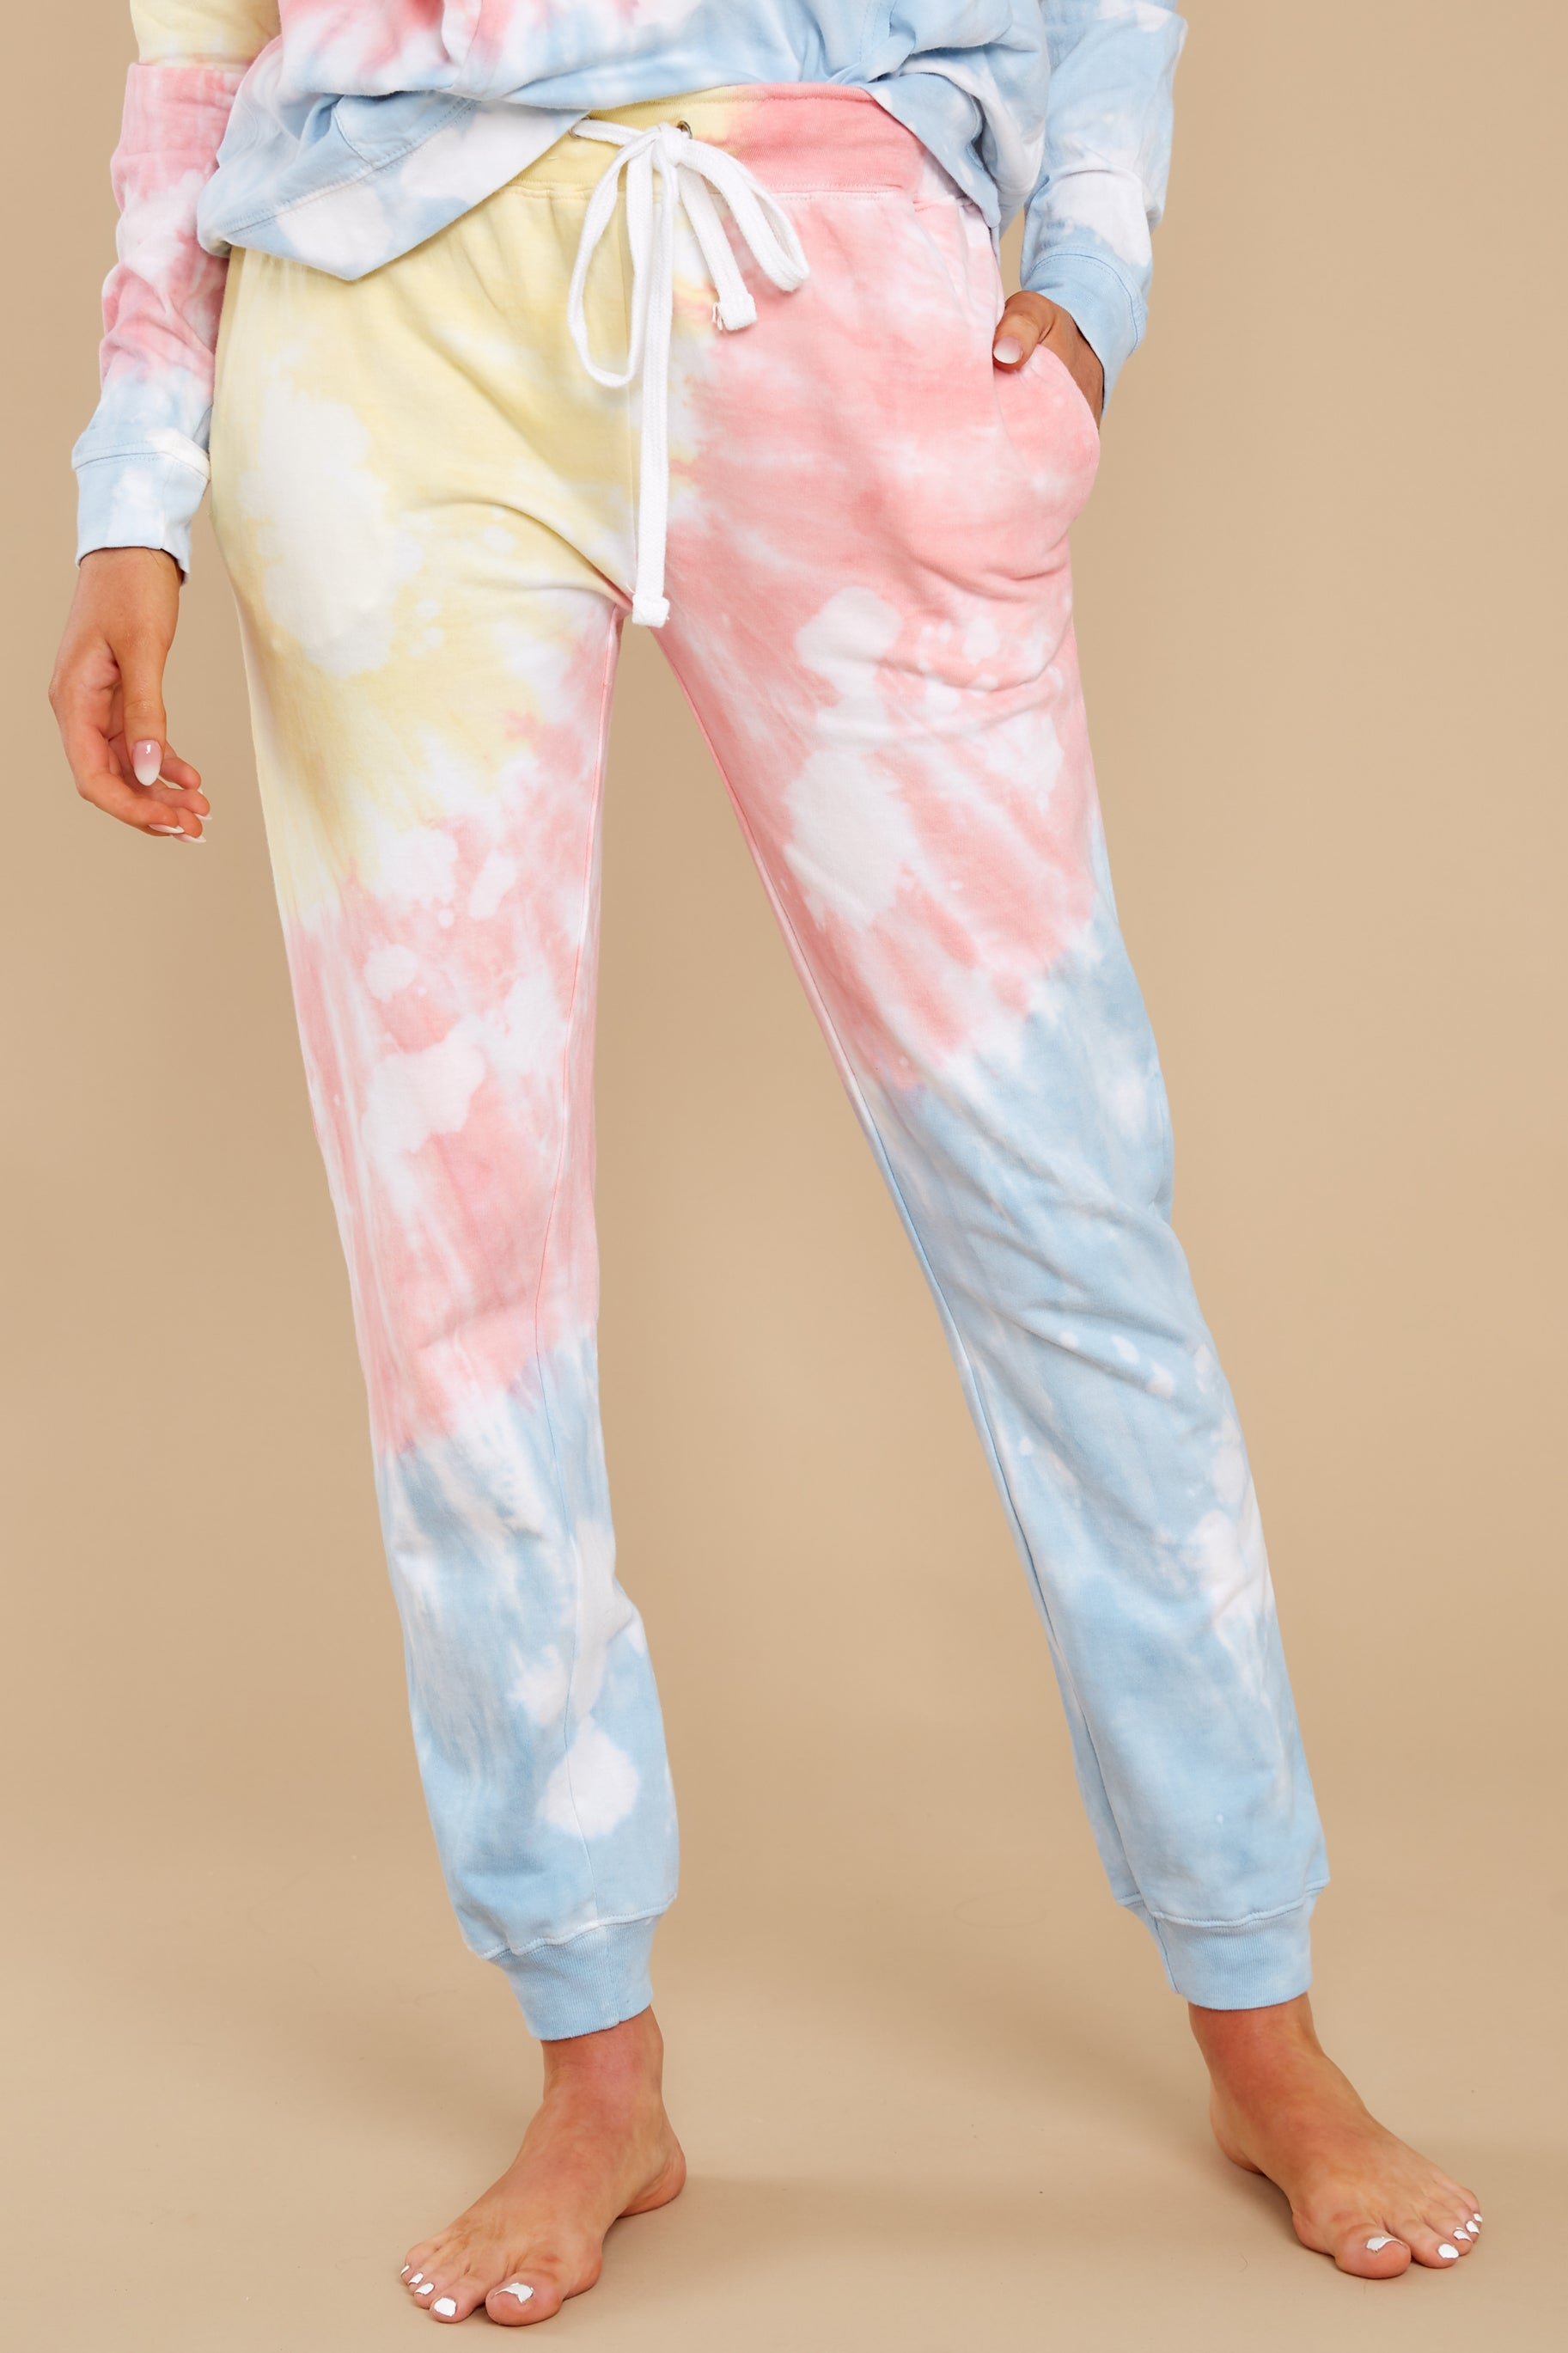 80s Jeans, Pants, Leggings Totally Worth It Sky Blossom Tie Dye Jogger Pants Orange $28.00 AT vintagedancer.com